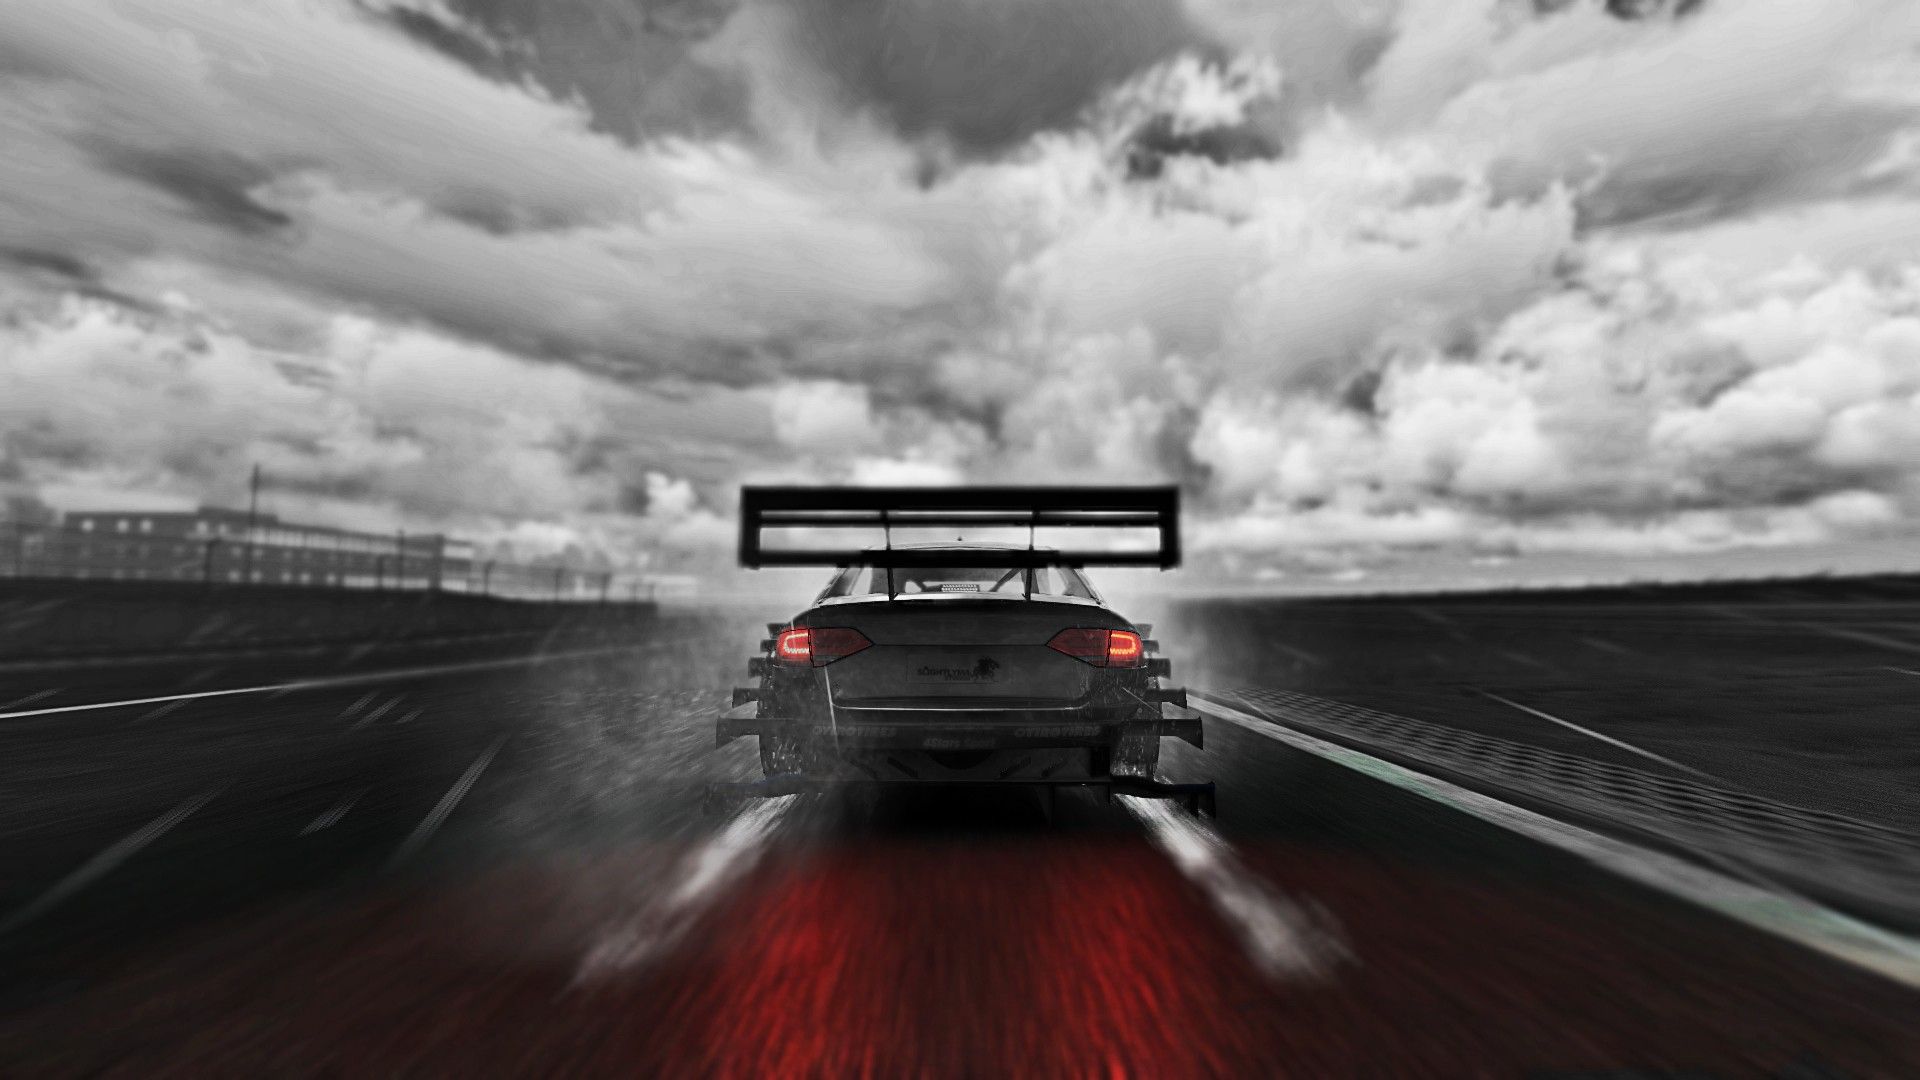 Drift Full Hd Wallpaper And Background Image 1920x1080